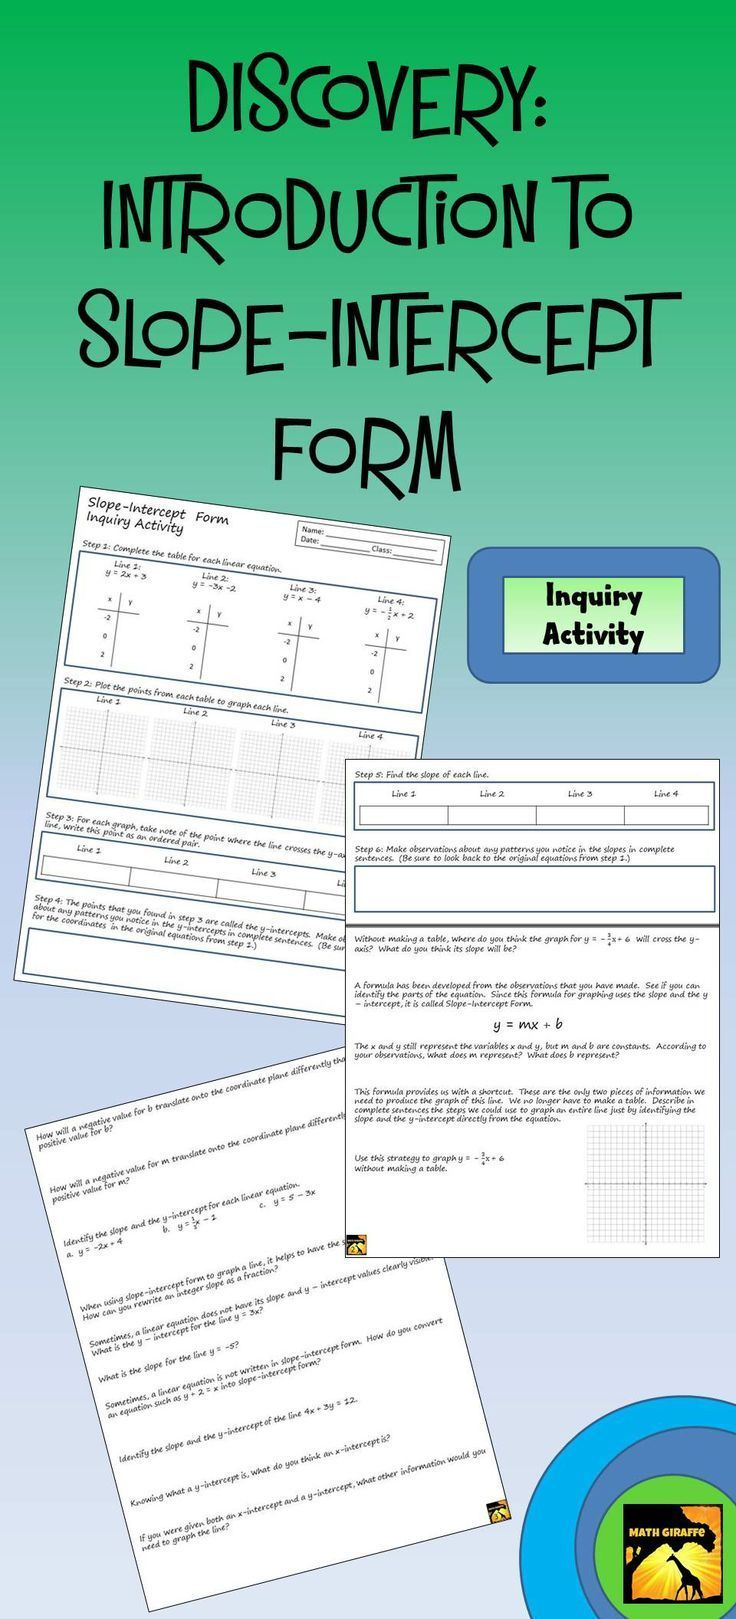 Introducing students to Slope-Intercept Form through guided ...